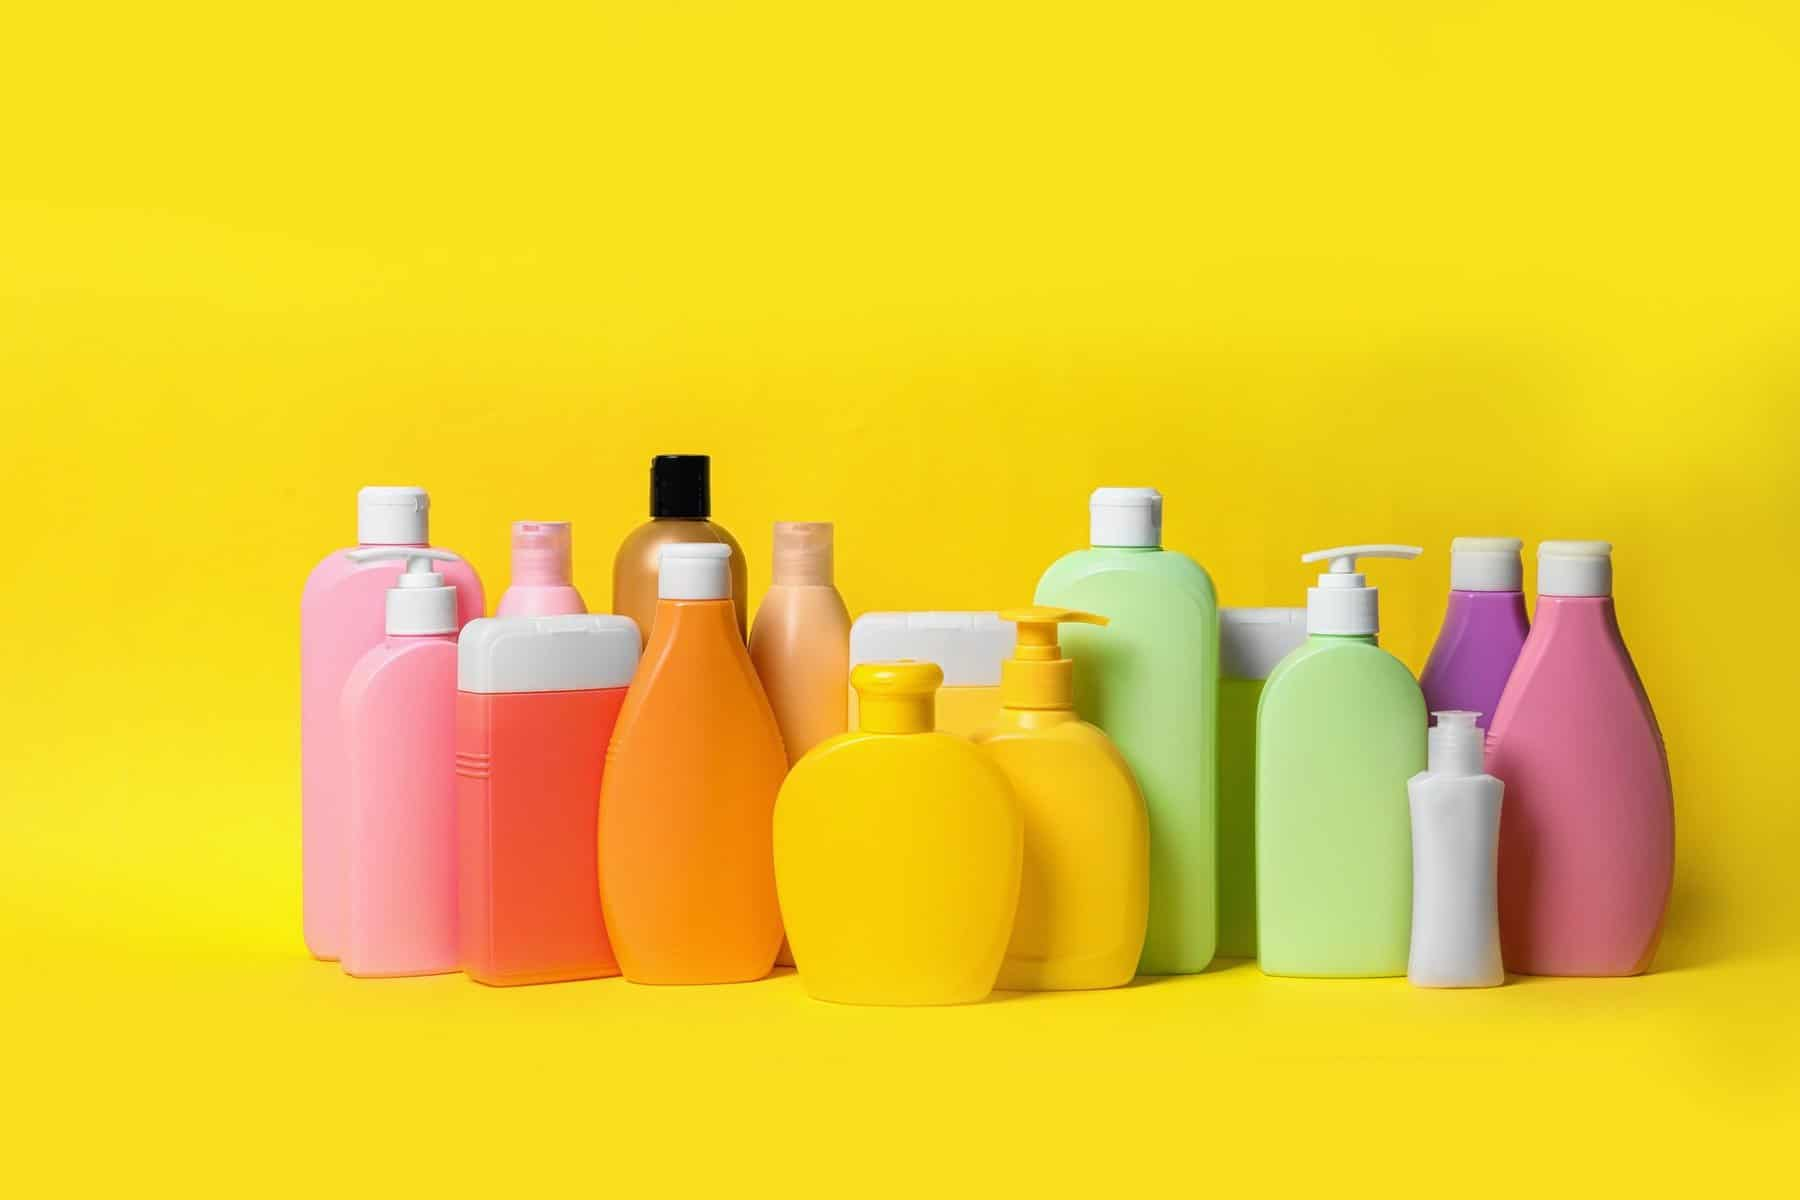 this is a picture of bottles of shampoo on yellow background. Natural cosmetic products showing different competitor prices or an article by Octopus Intelligence. We isolate your problems, reduce risk and uncertainty and deliver intelligence-led answers and innovative solutions. Dedicated to help you win. Download our competitor is cheaper than us template Prices Different Product technology and warning related Intelligence questions